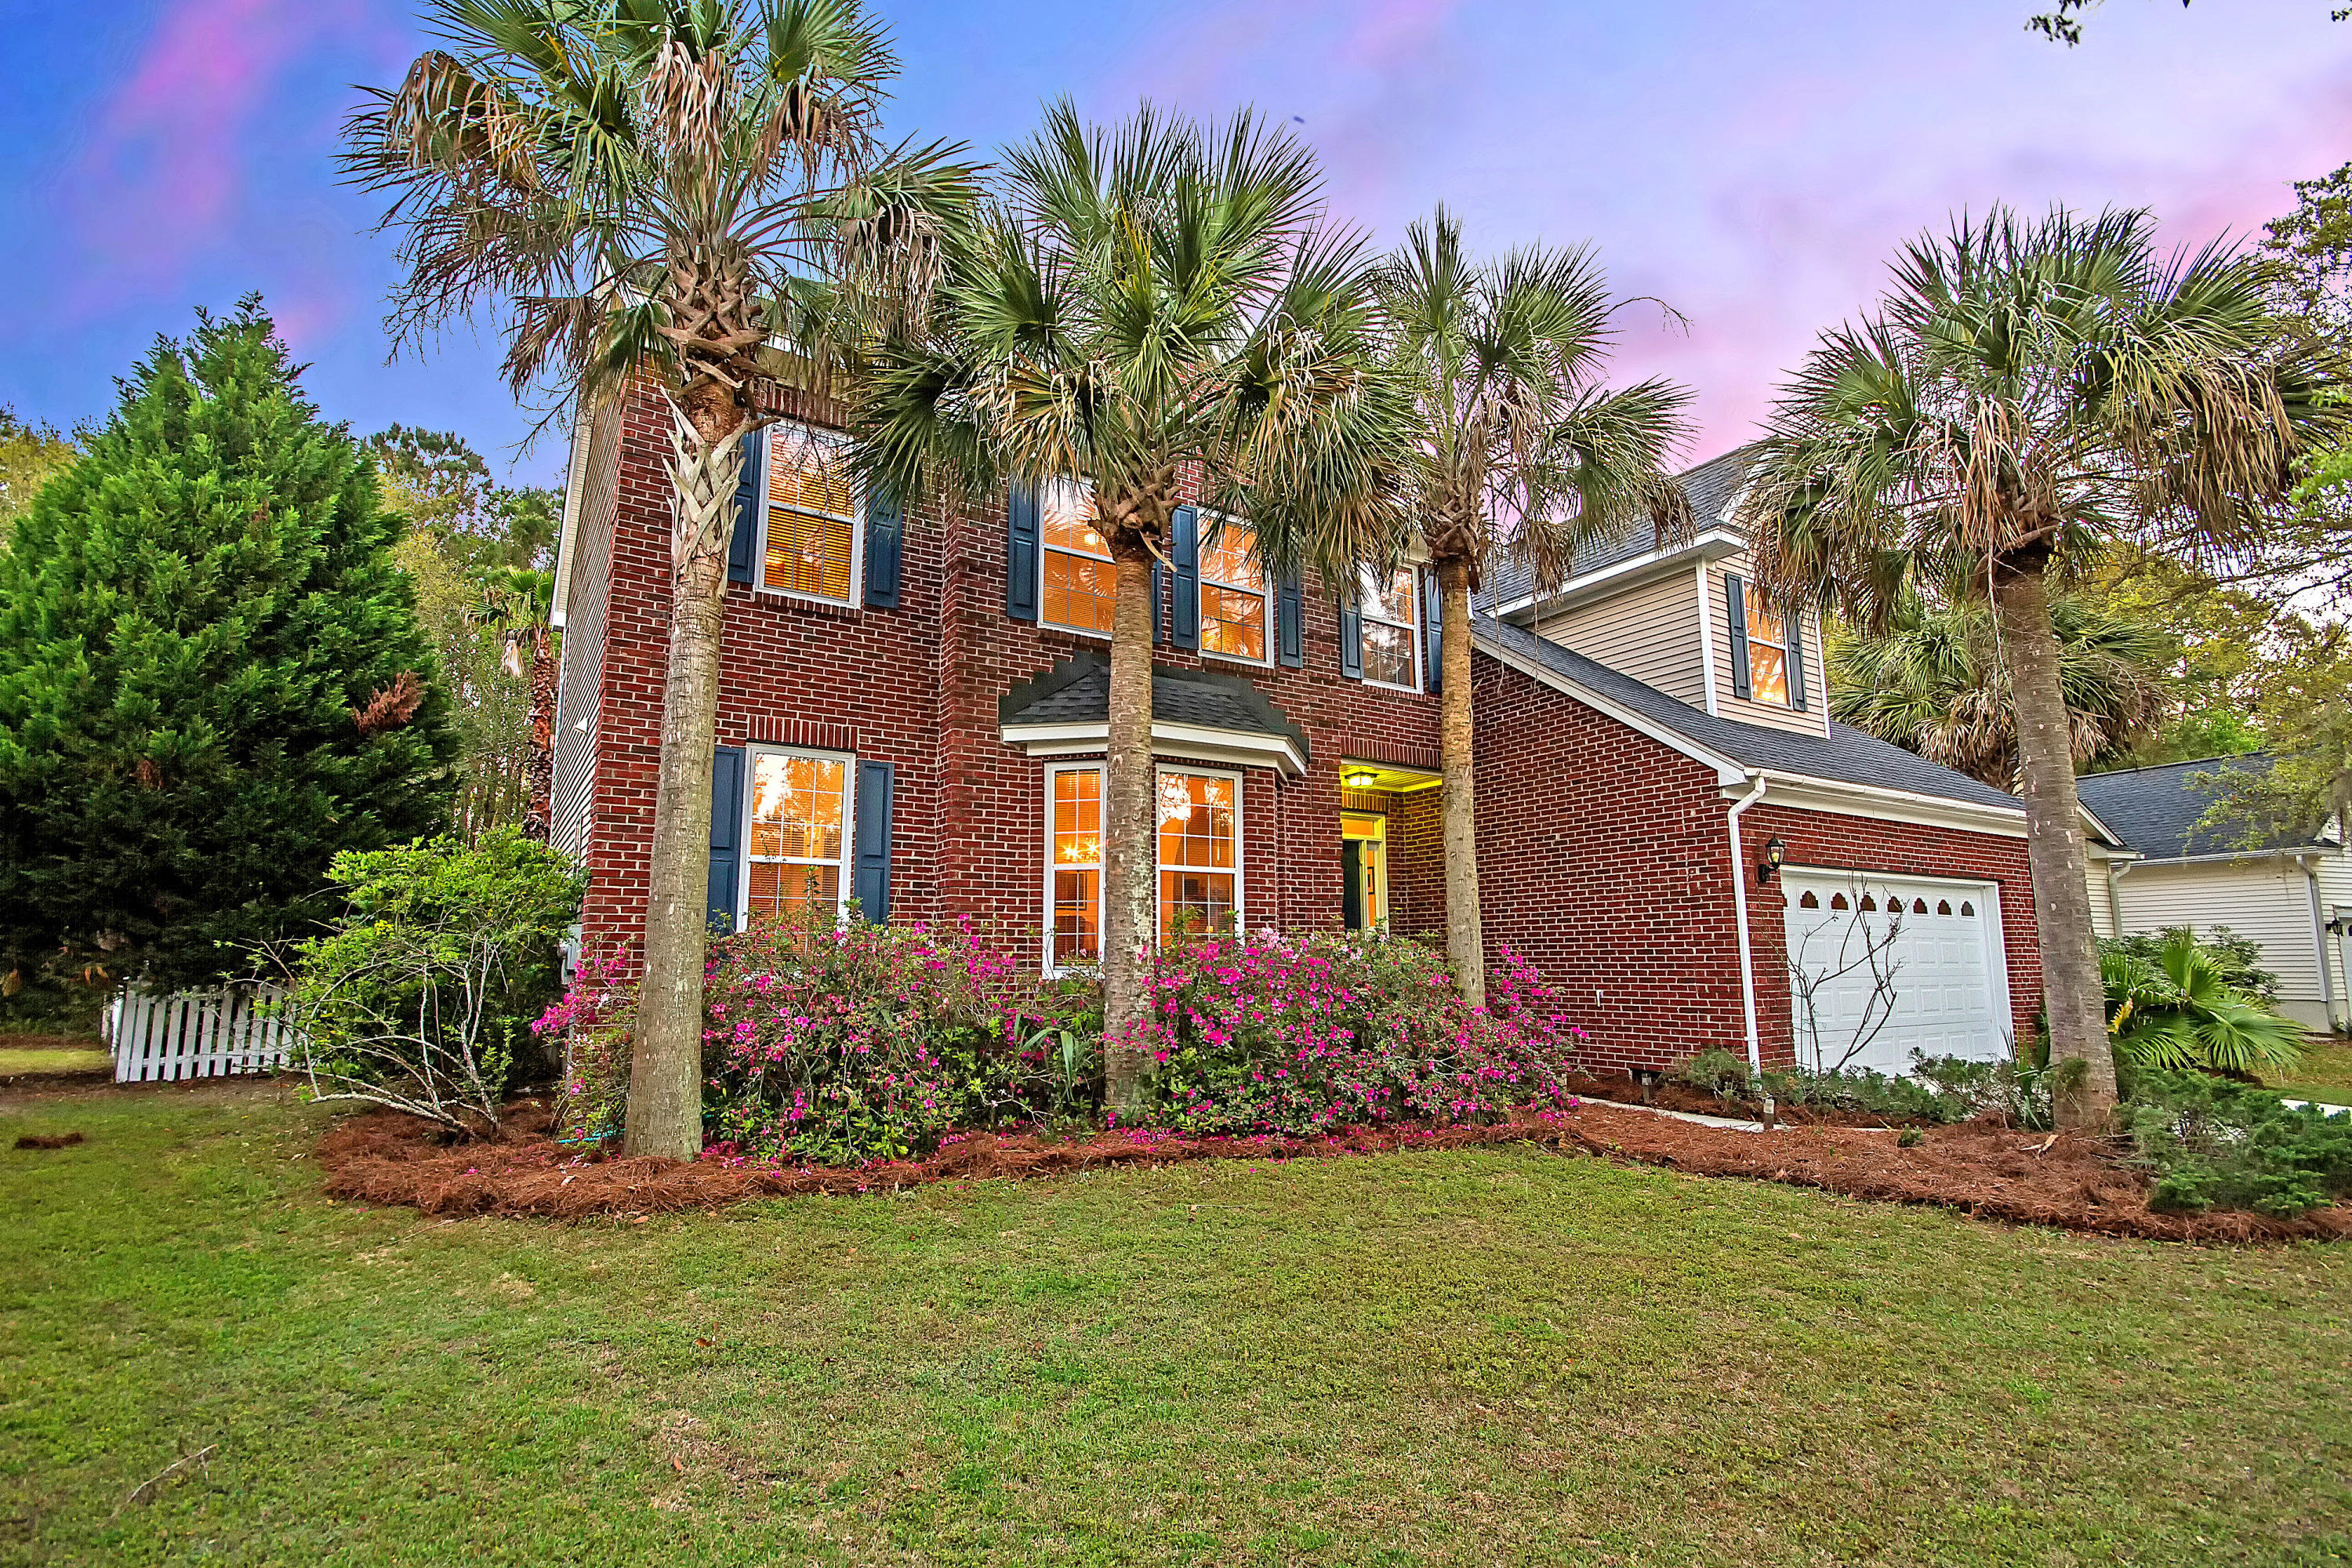 Seaside Farms Homes For Sale - 1252 Wild Olive, Mount Pleasant, SC - 20